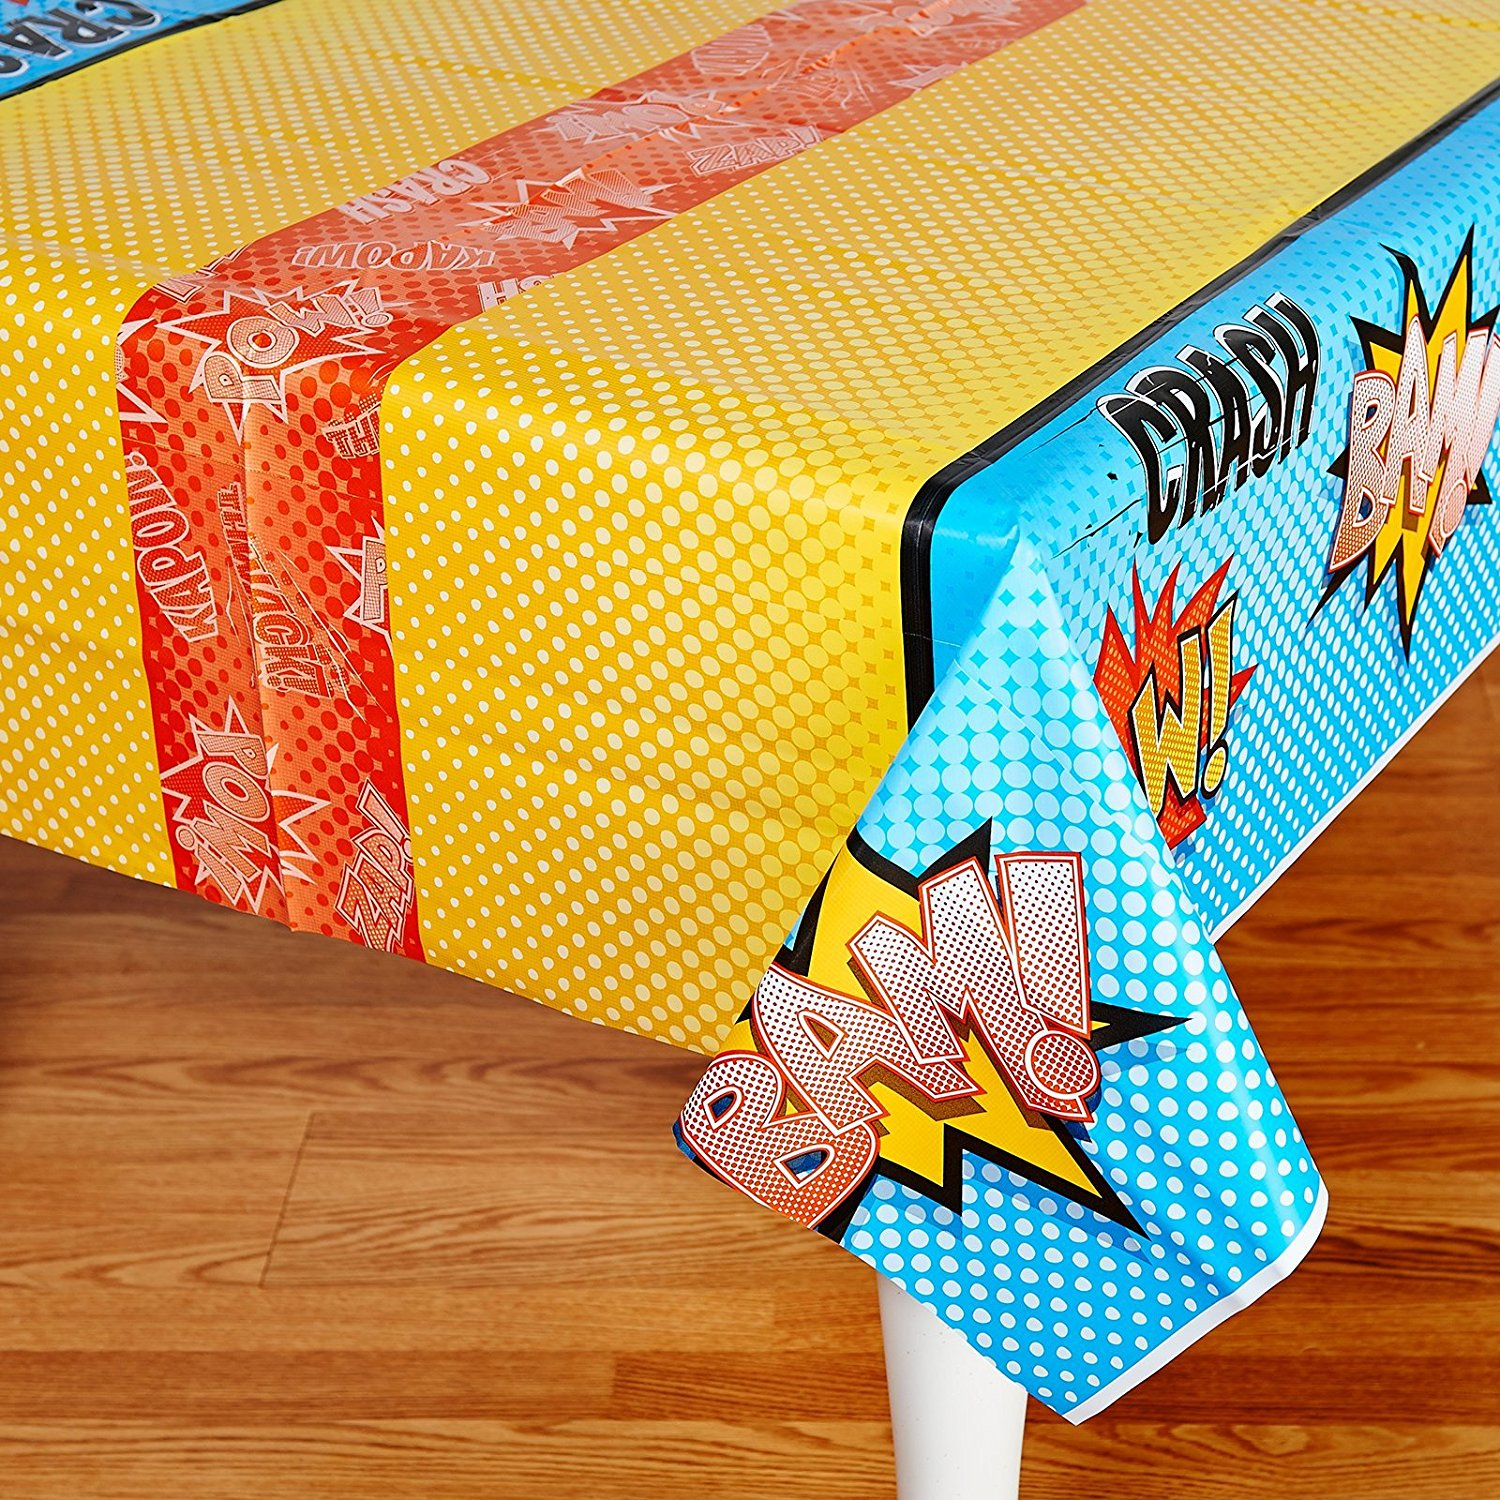 Hero Central VBS Decor on Amazon - Southern Made Simple